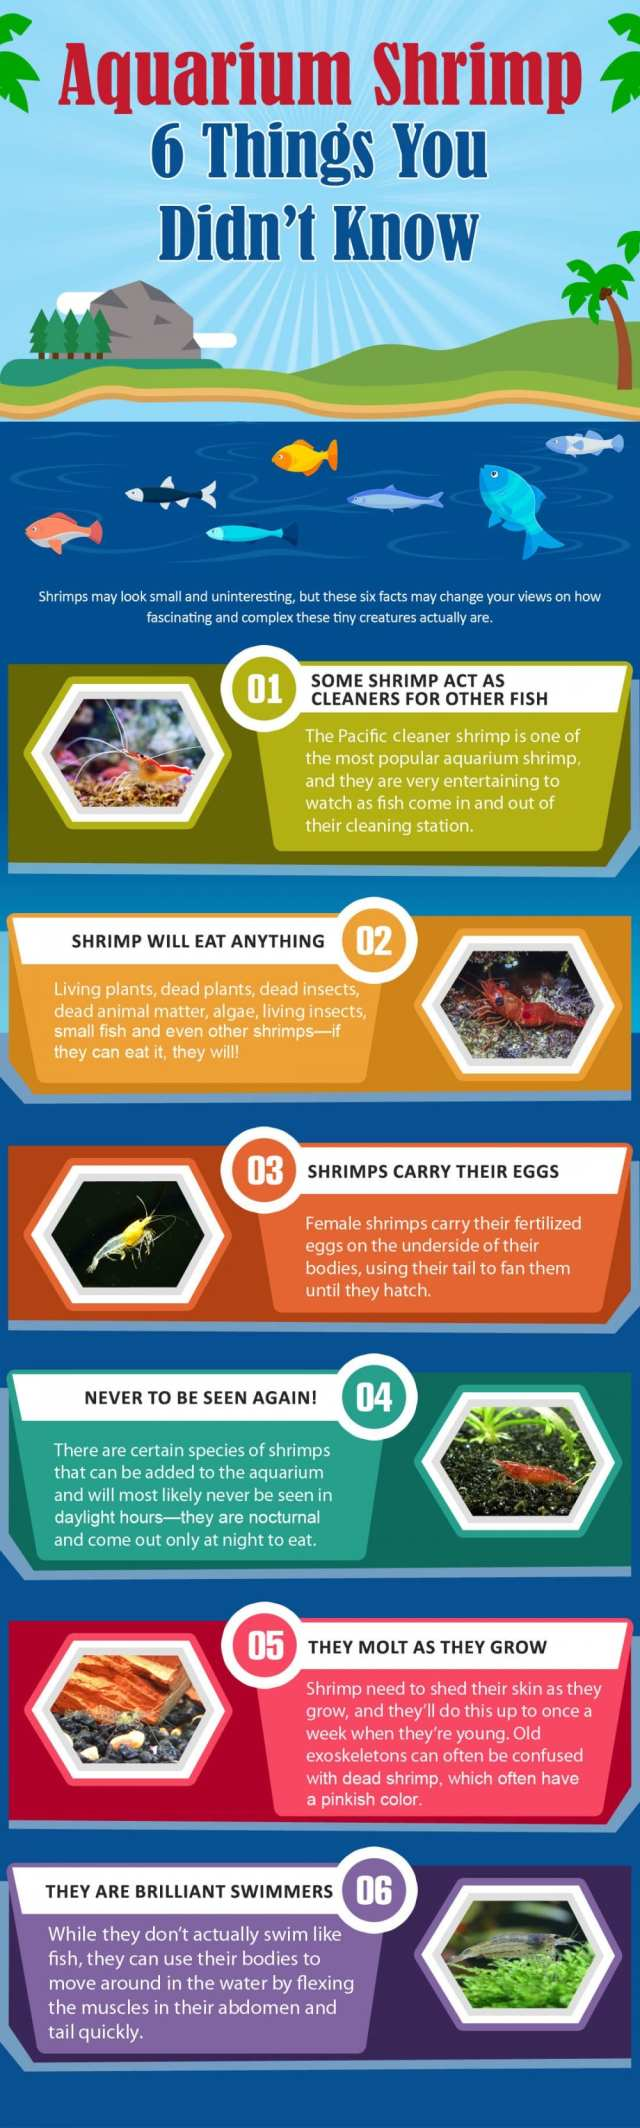 6 Things You Didn't Know About Aquarium Shrimp